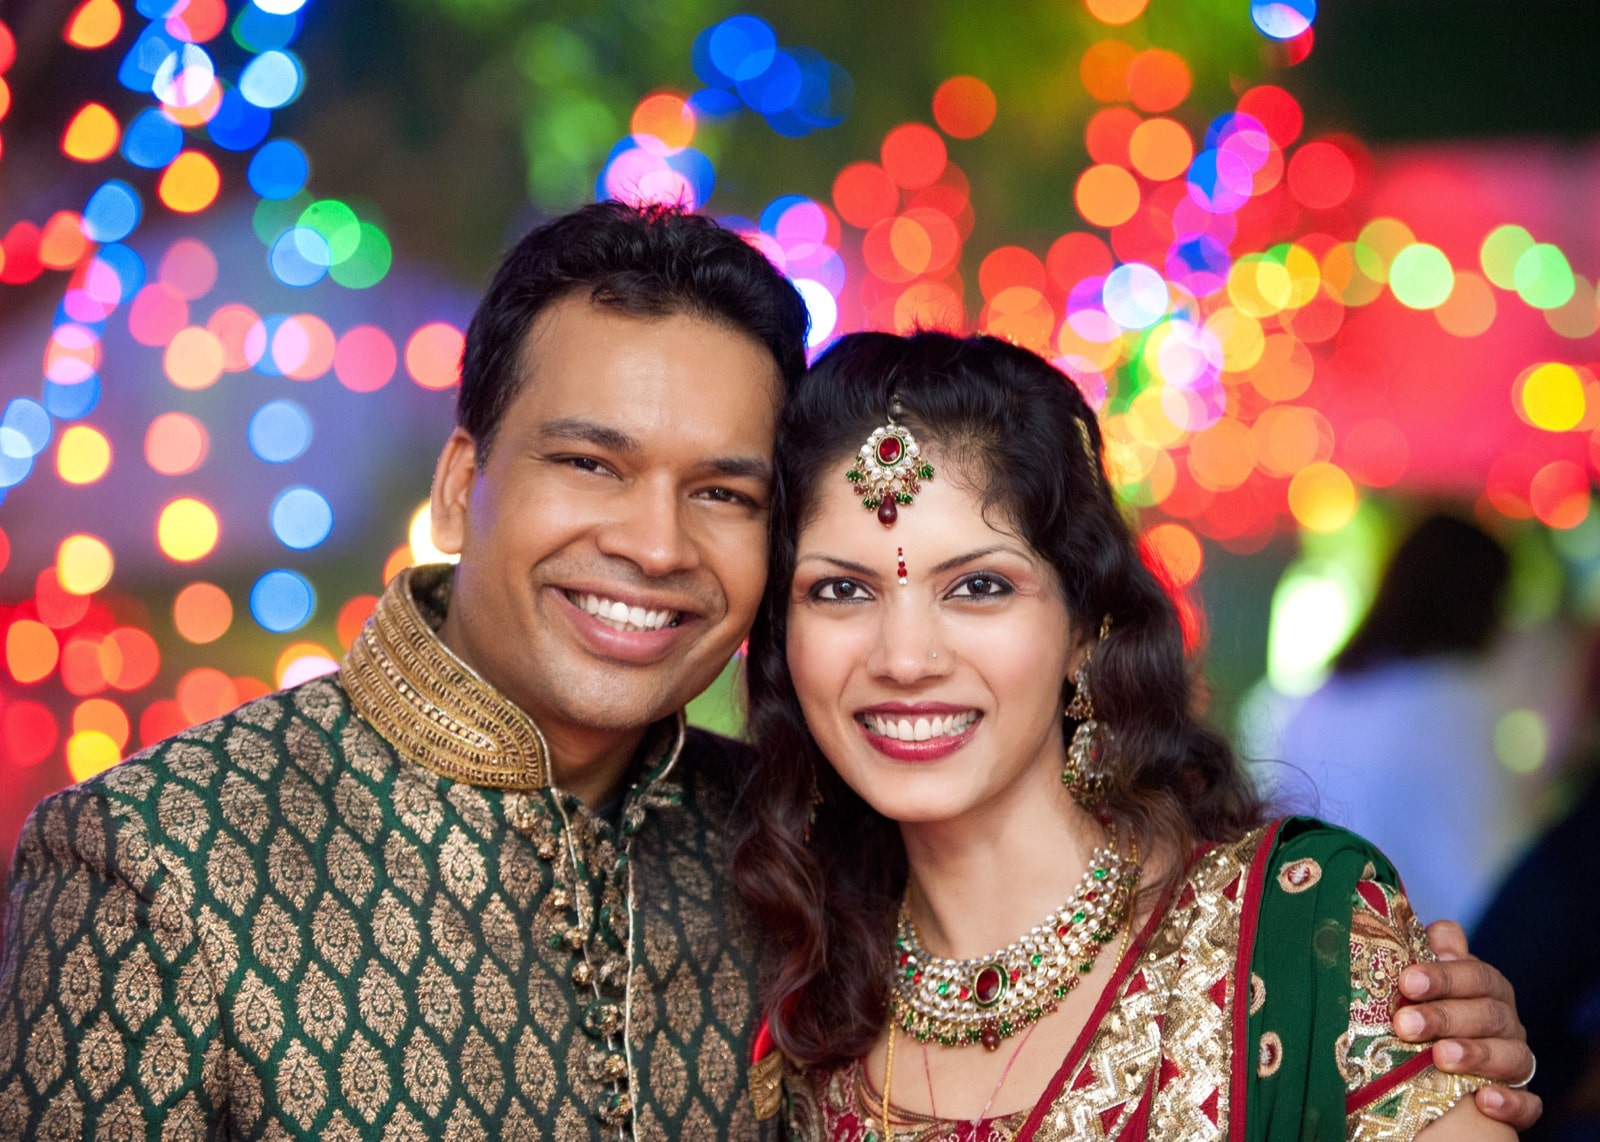 Destination wedding Kerala India